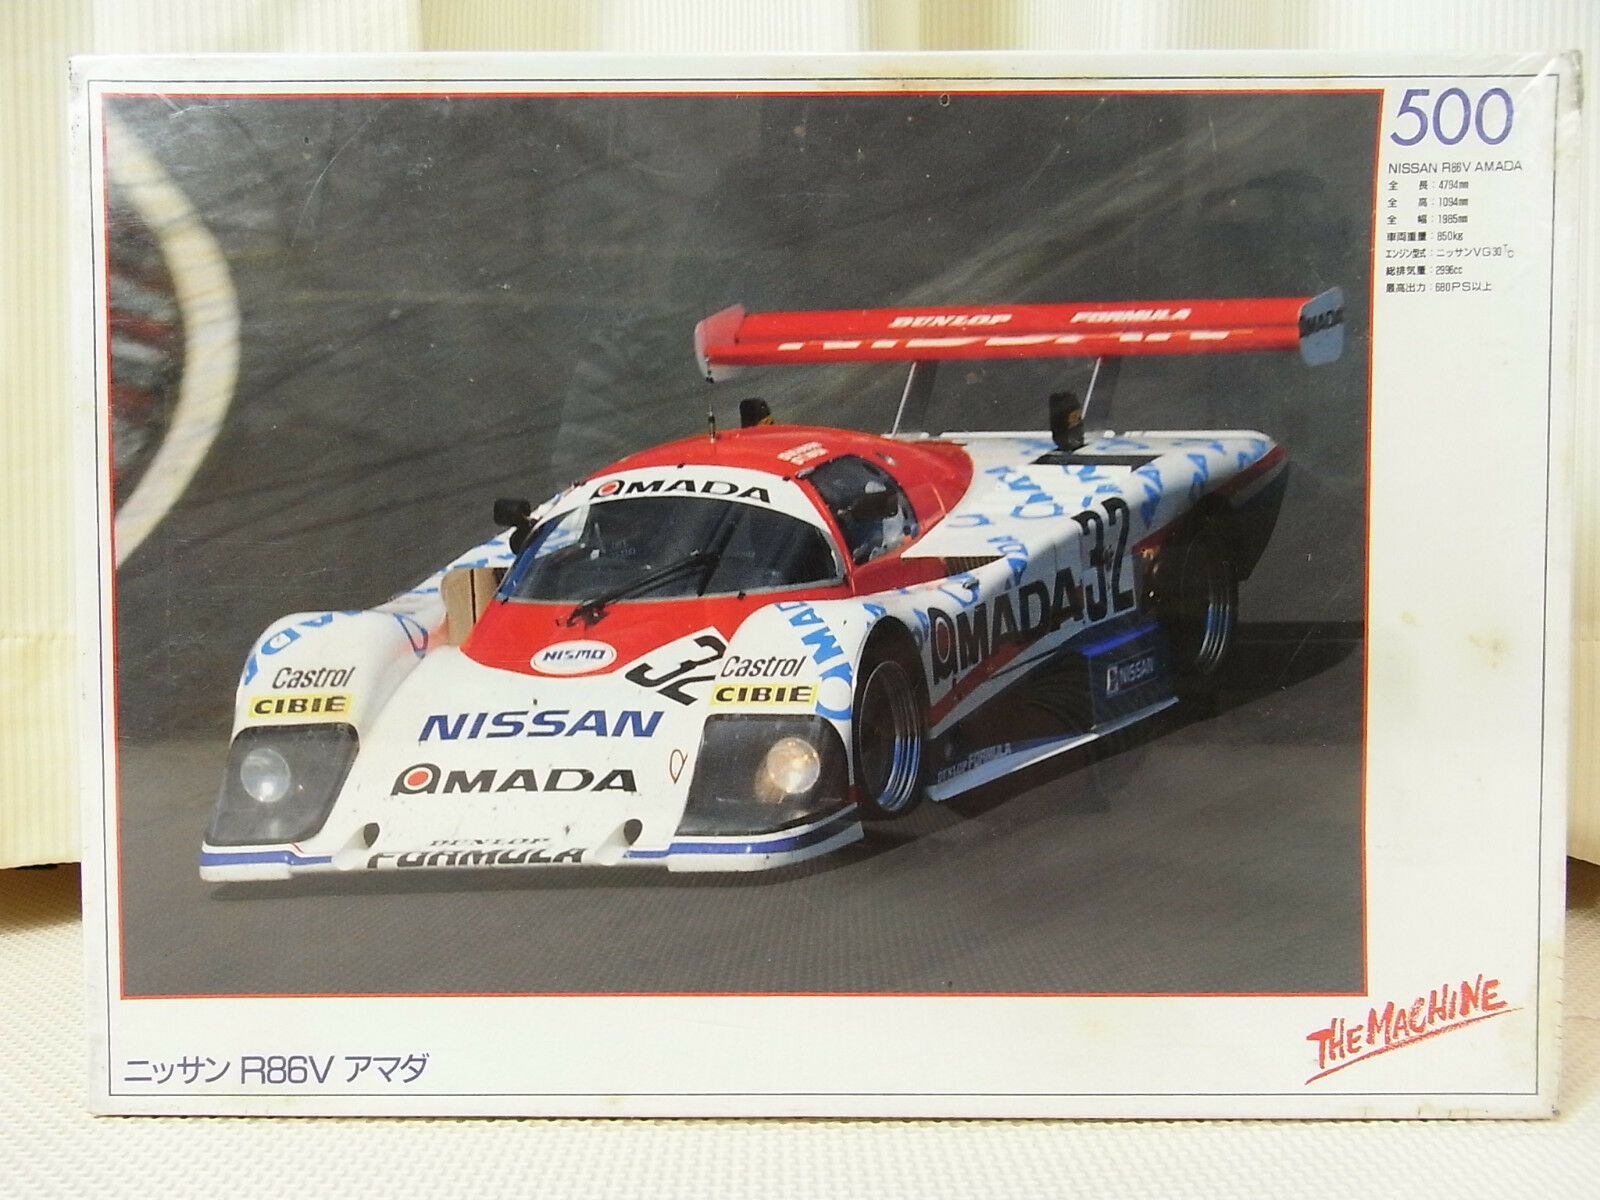 [GOODS]  NISSAN R86V AMADA  32 1986 Jigsaw Puzzle 500pcs Japan  ordinare on-line